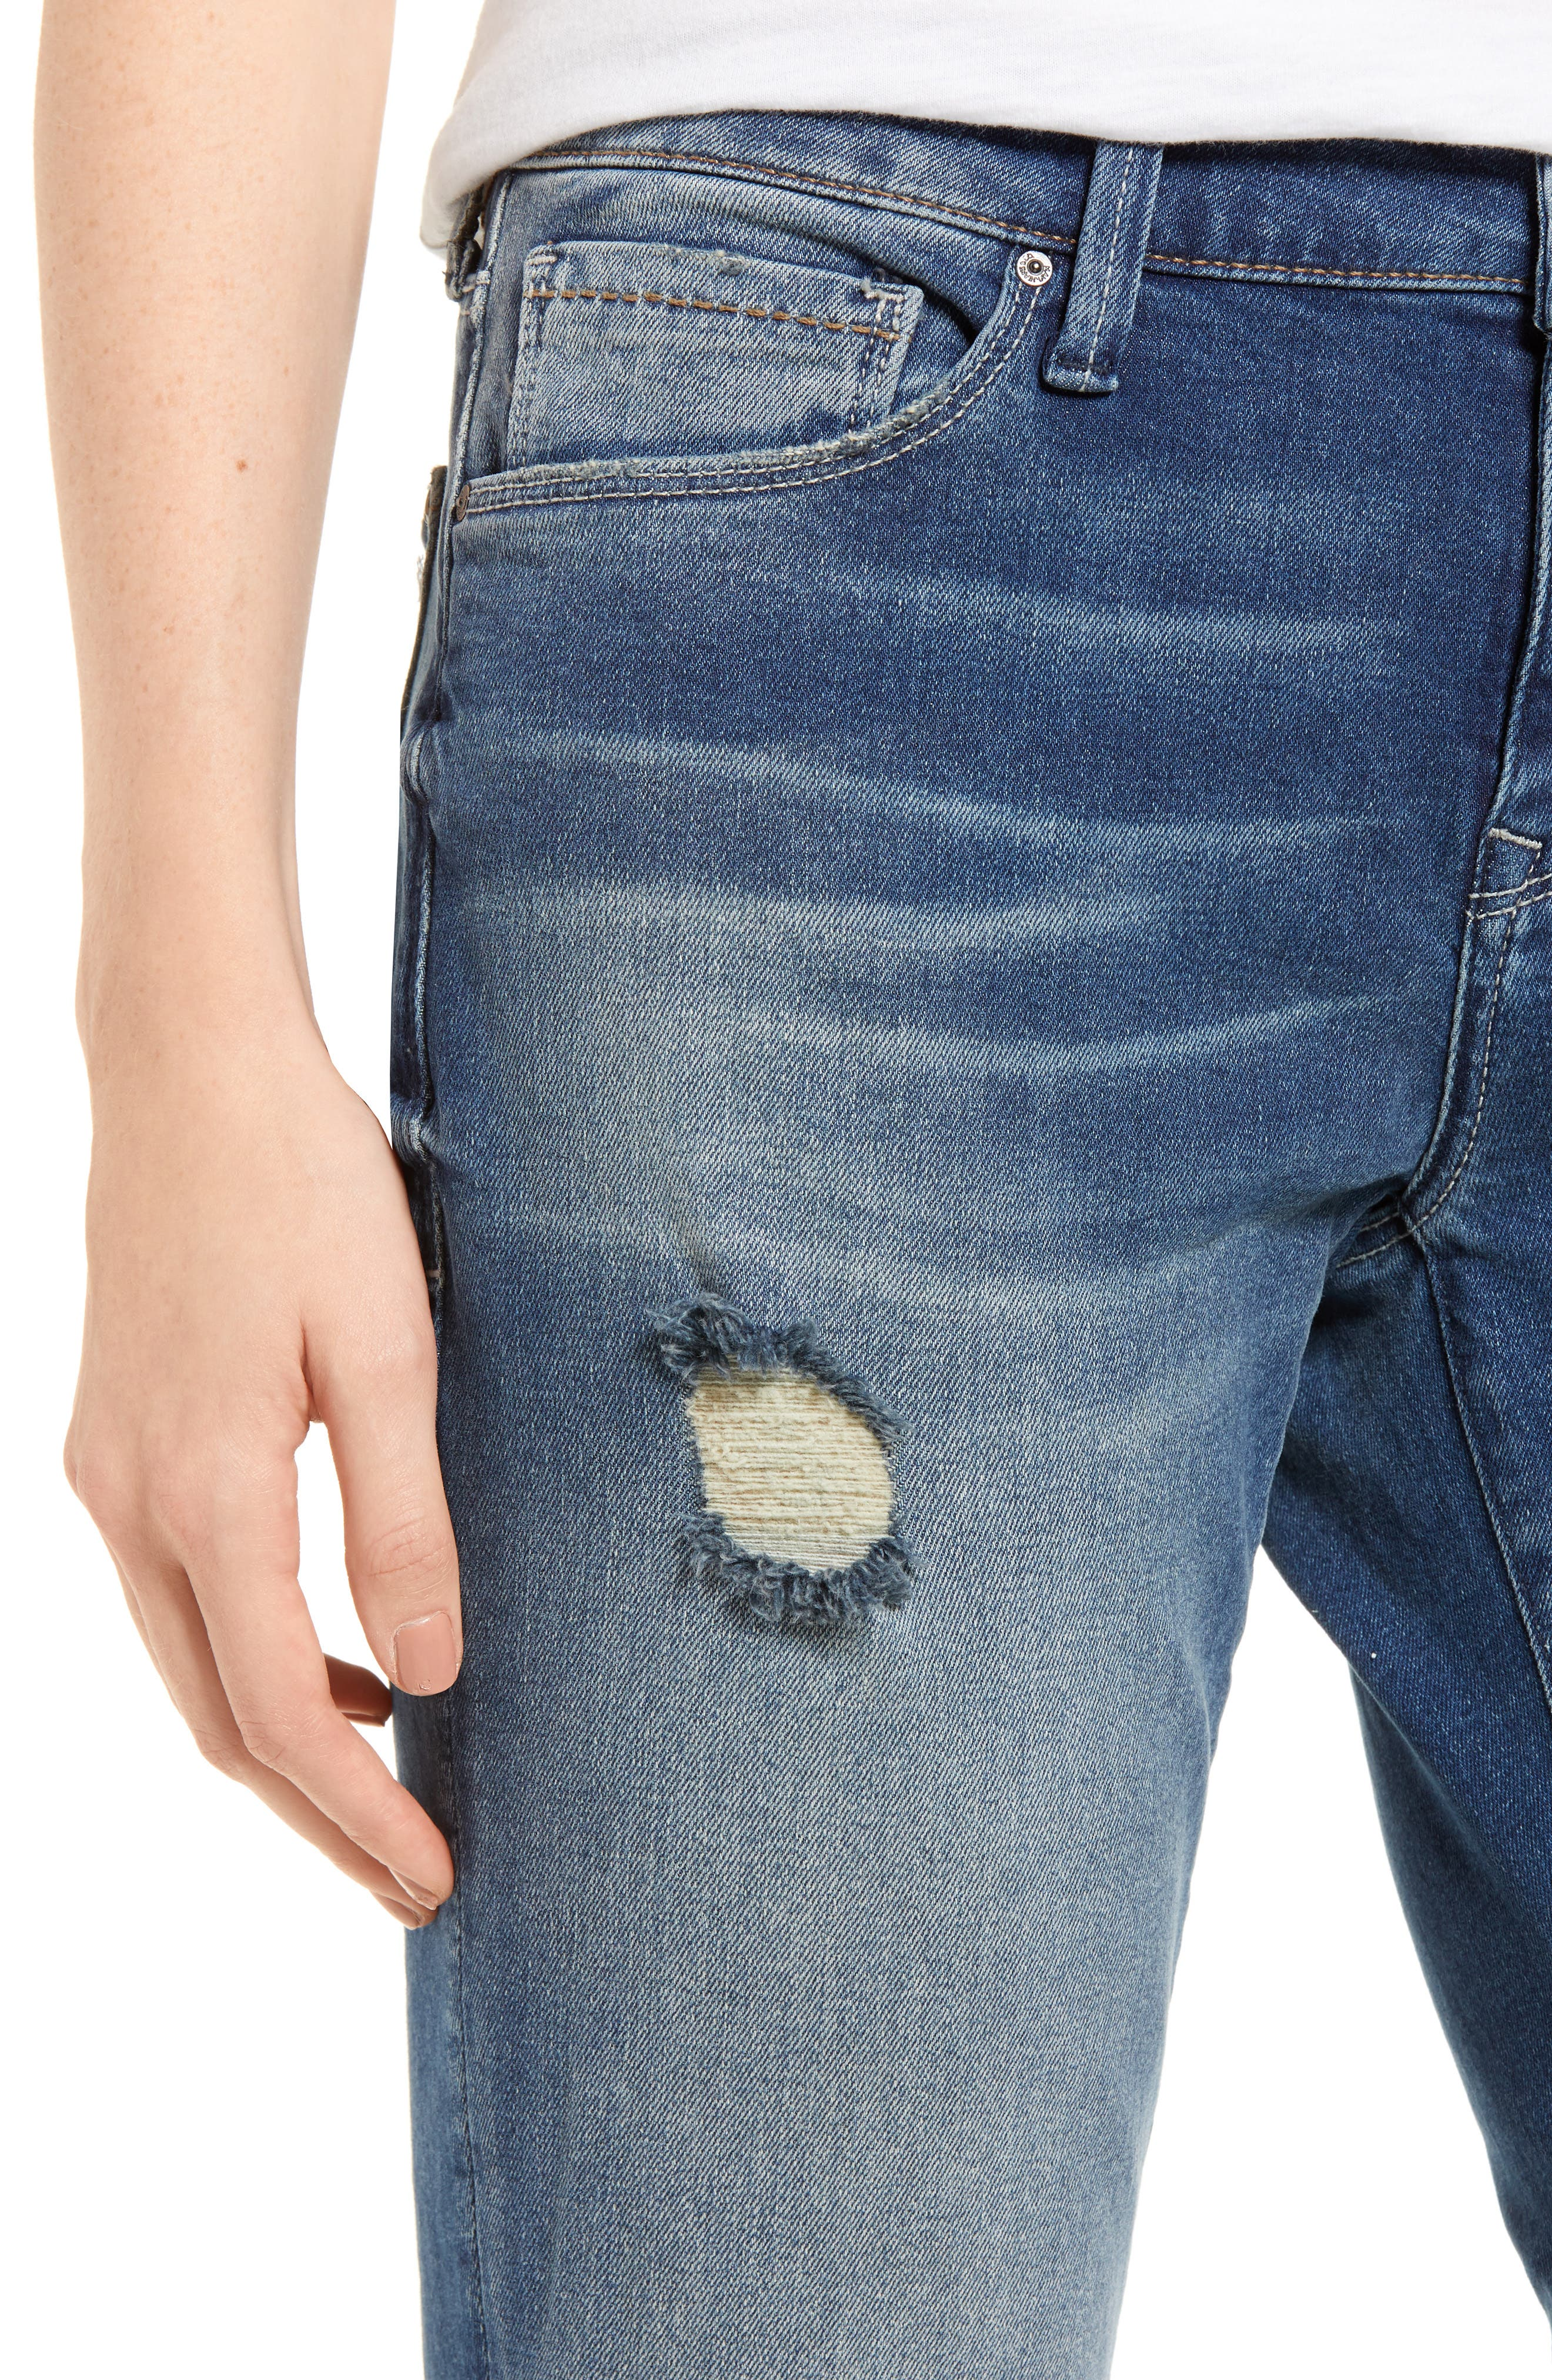 Ada Ripped Boyfriend Jeans,                             Alternate thumbnail 4, color,                             MID RIPPED VINTAGE